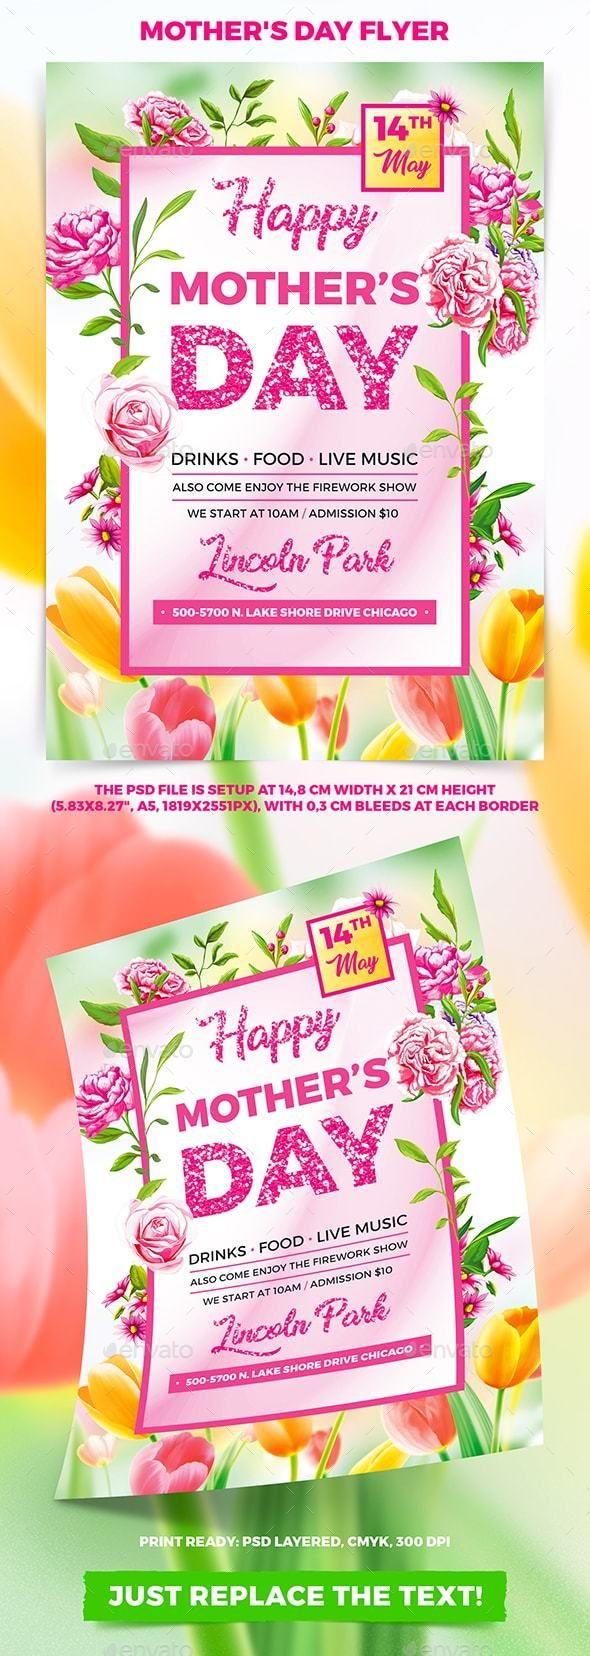 MotherS Day Flyer  Flyer Template Font Logo And Fonts